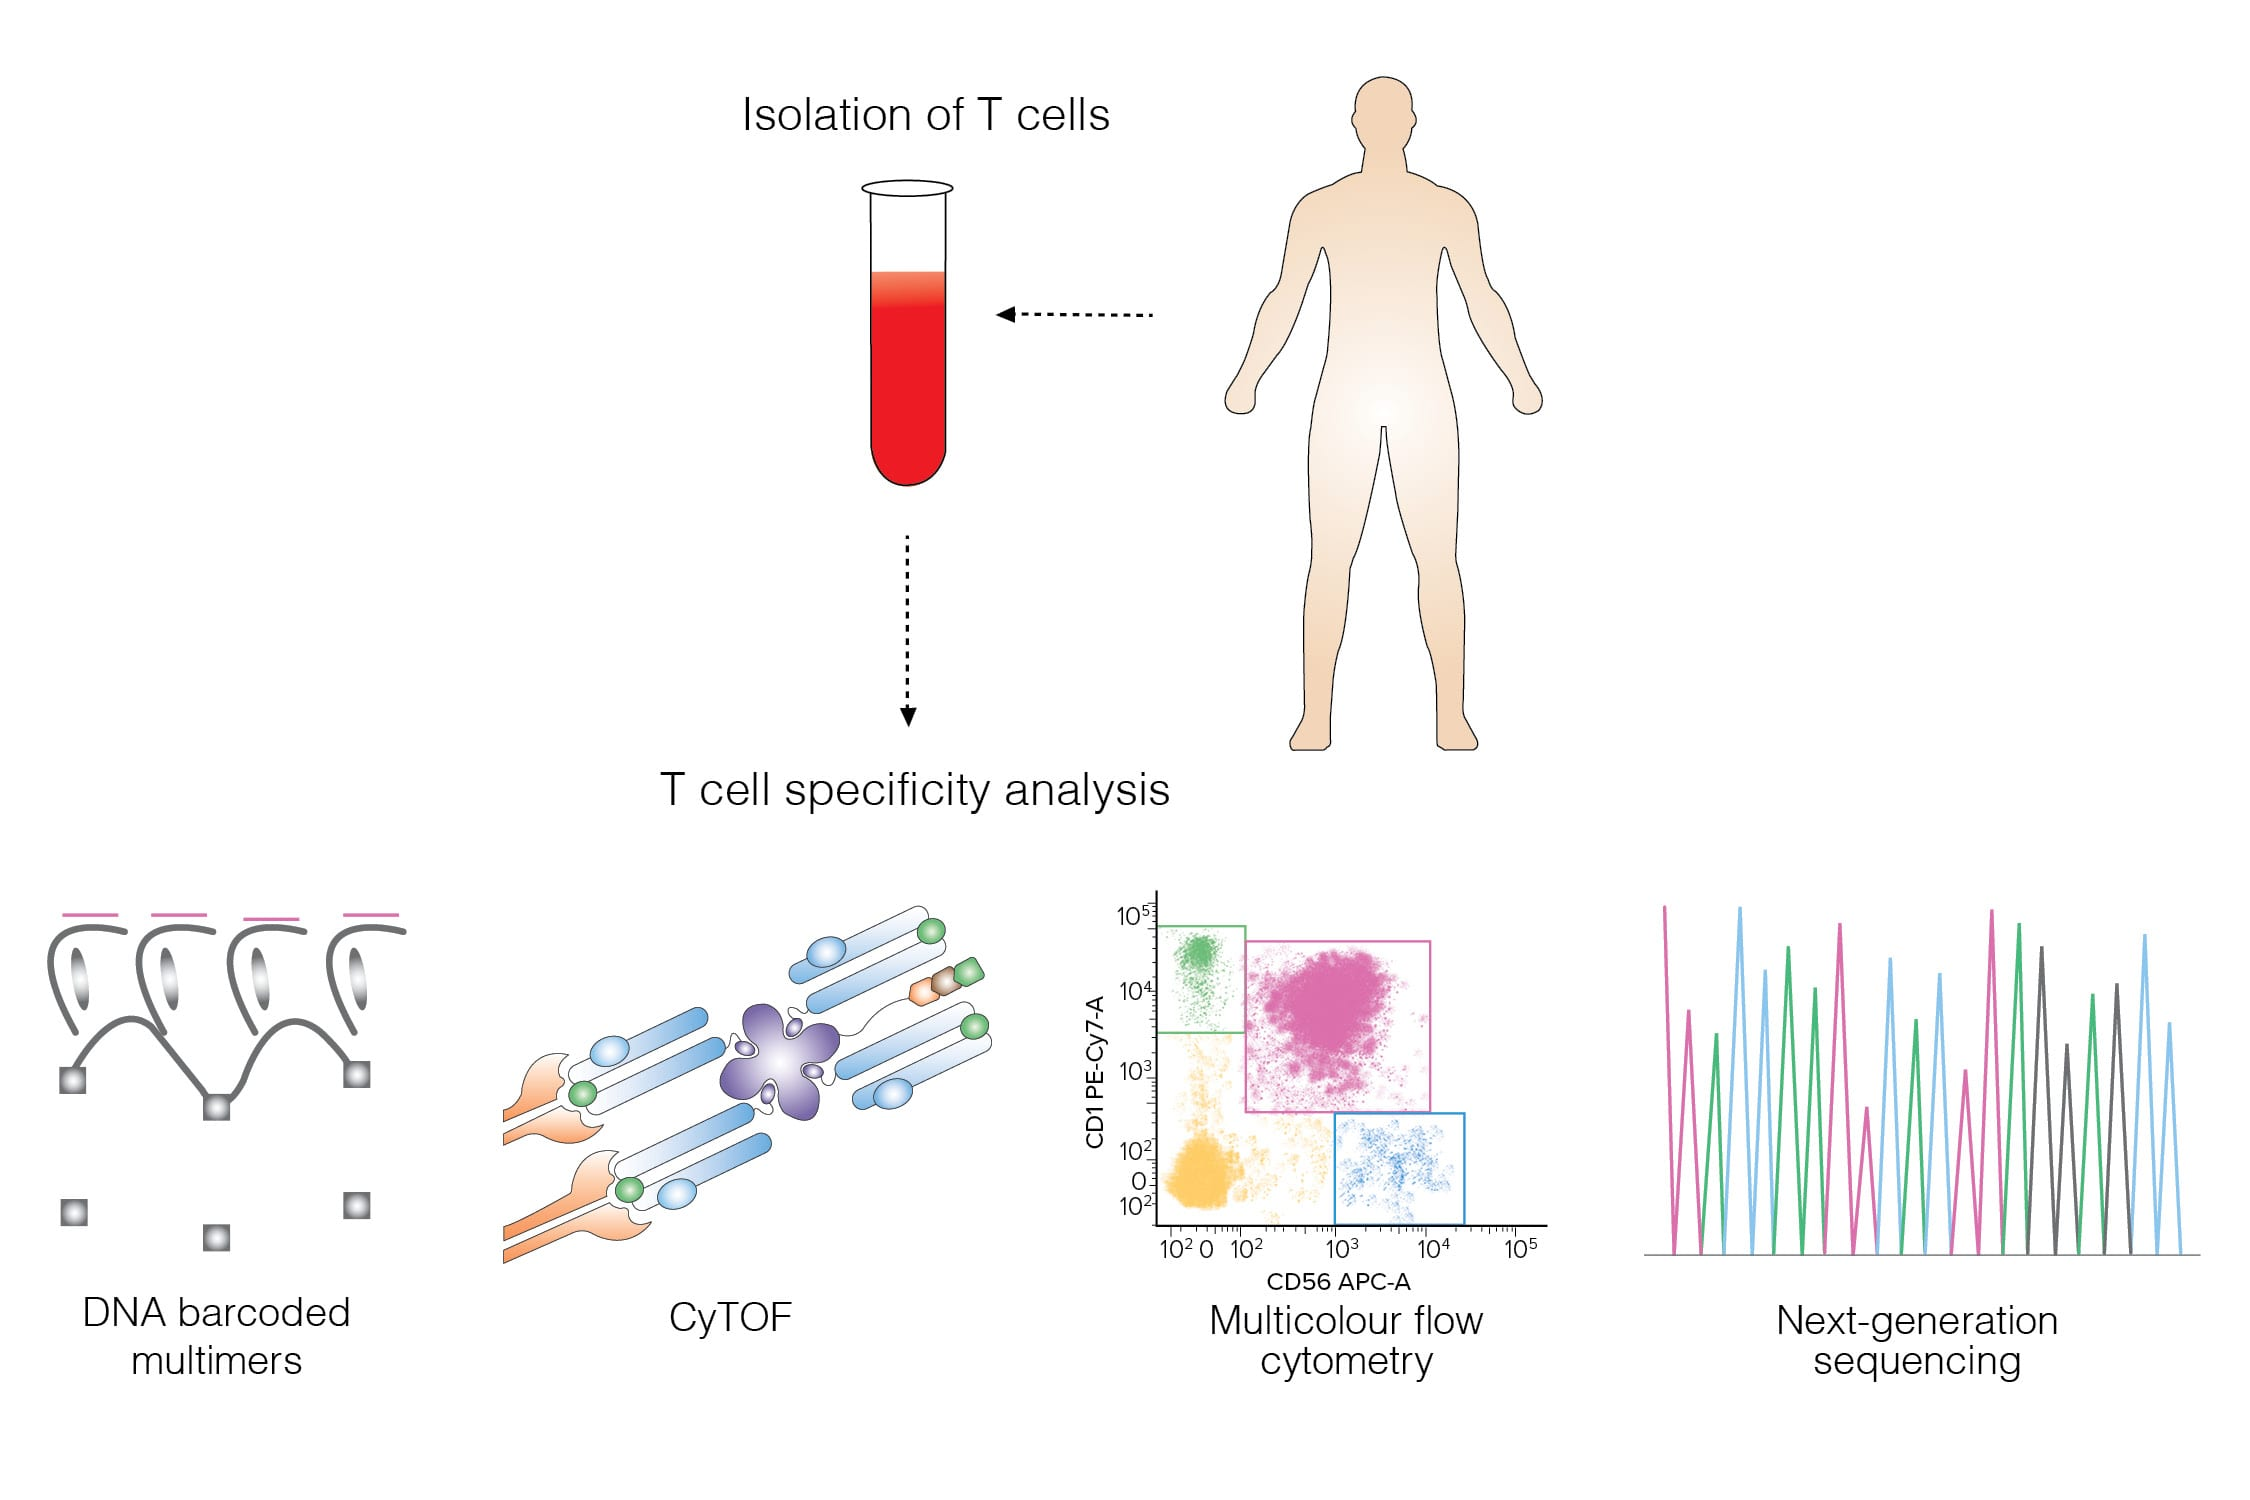 T Cell Specificity Assay -imag1_10-16-2020-final